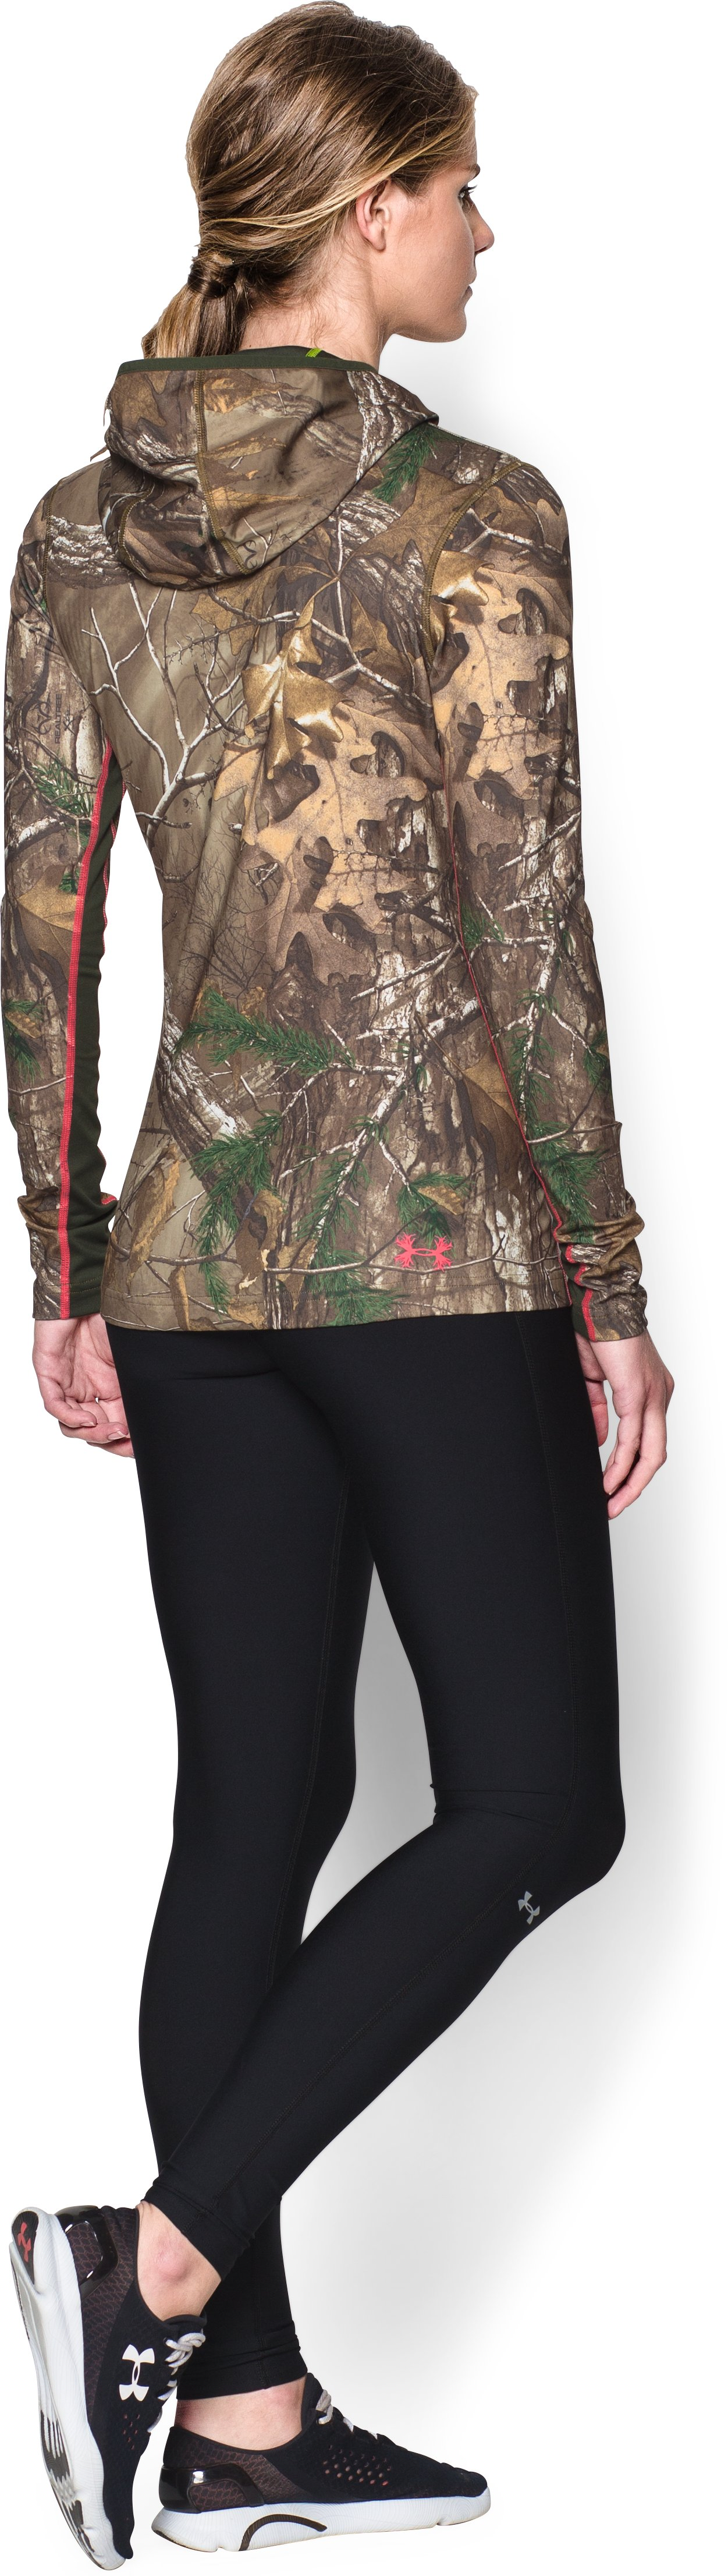 Women's ColdGear® Infrared EVO Hoodie, REALTREE AP-XTRA, Back